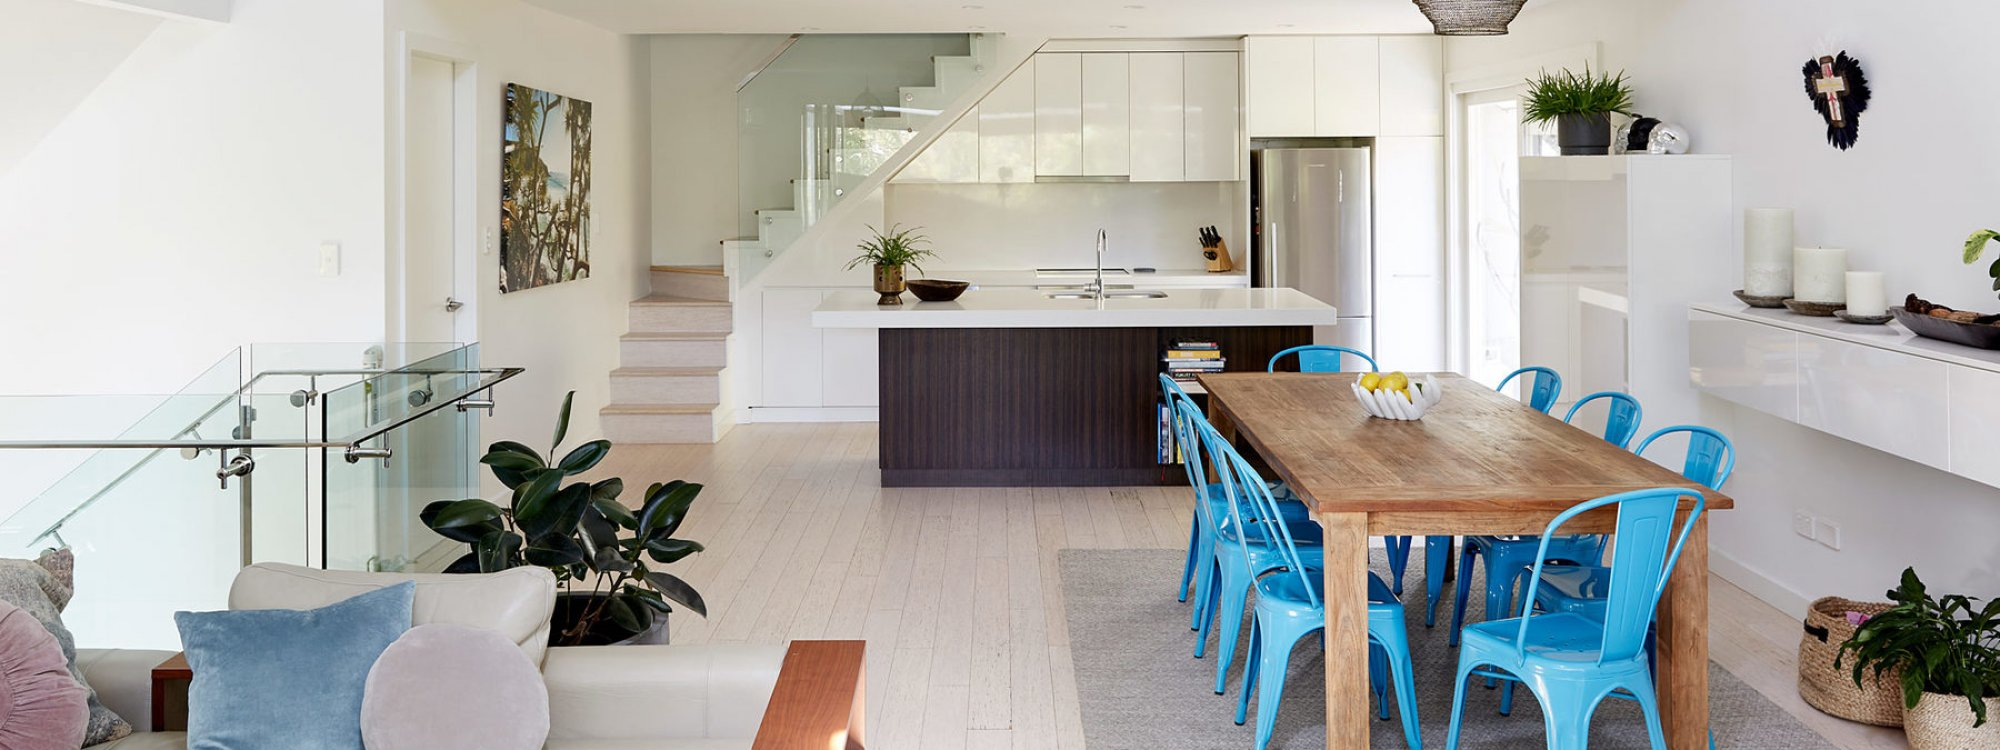 Arya - Byron Bay - Living Area Through To Kitchen and Loft Bedroom